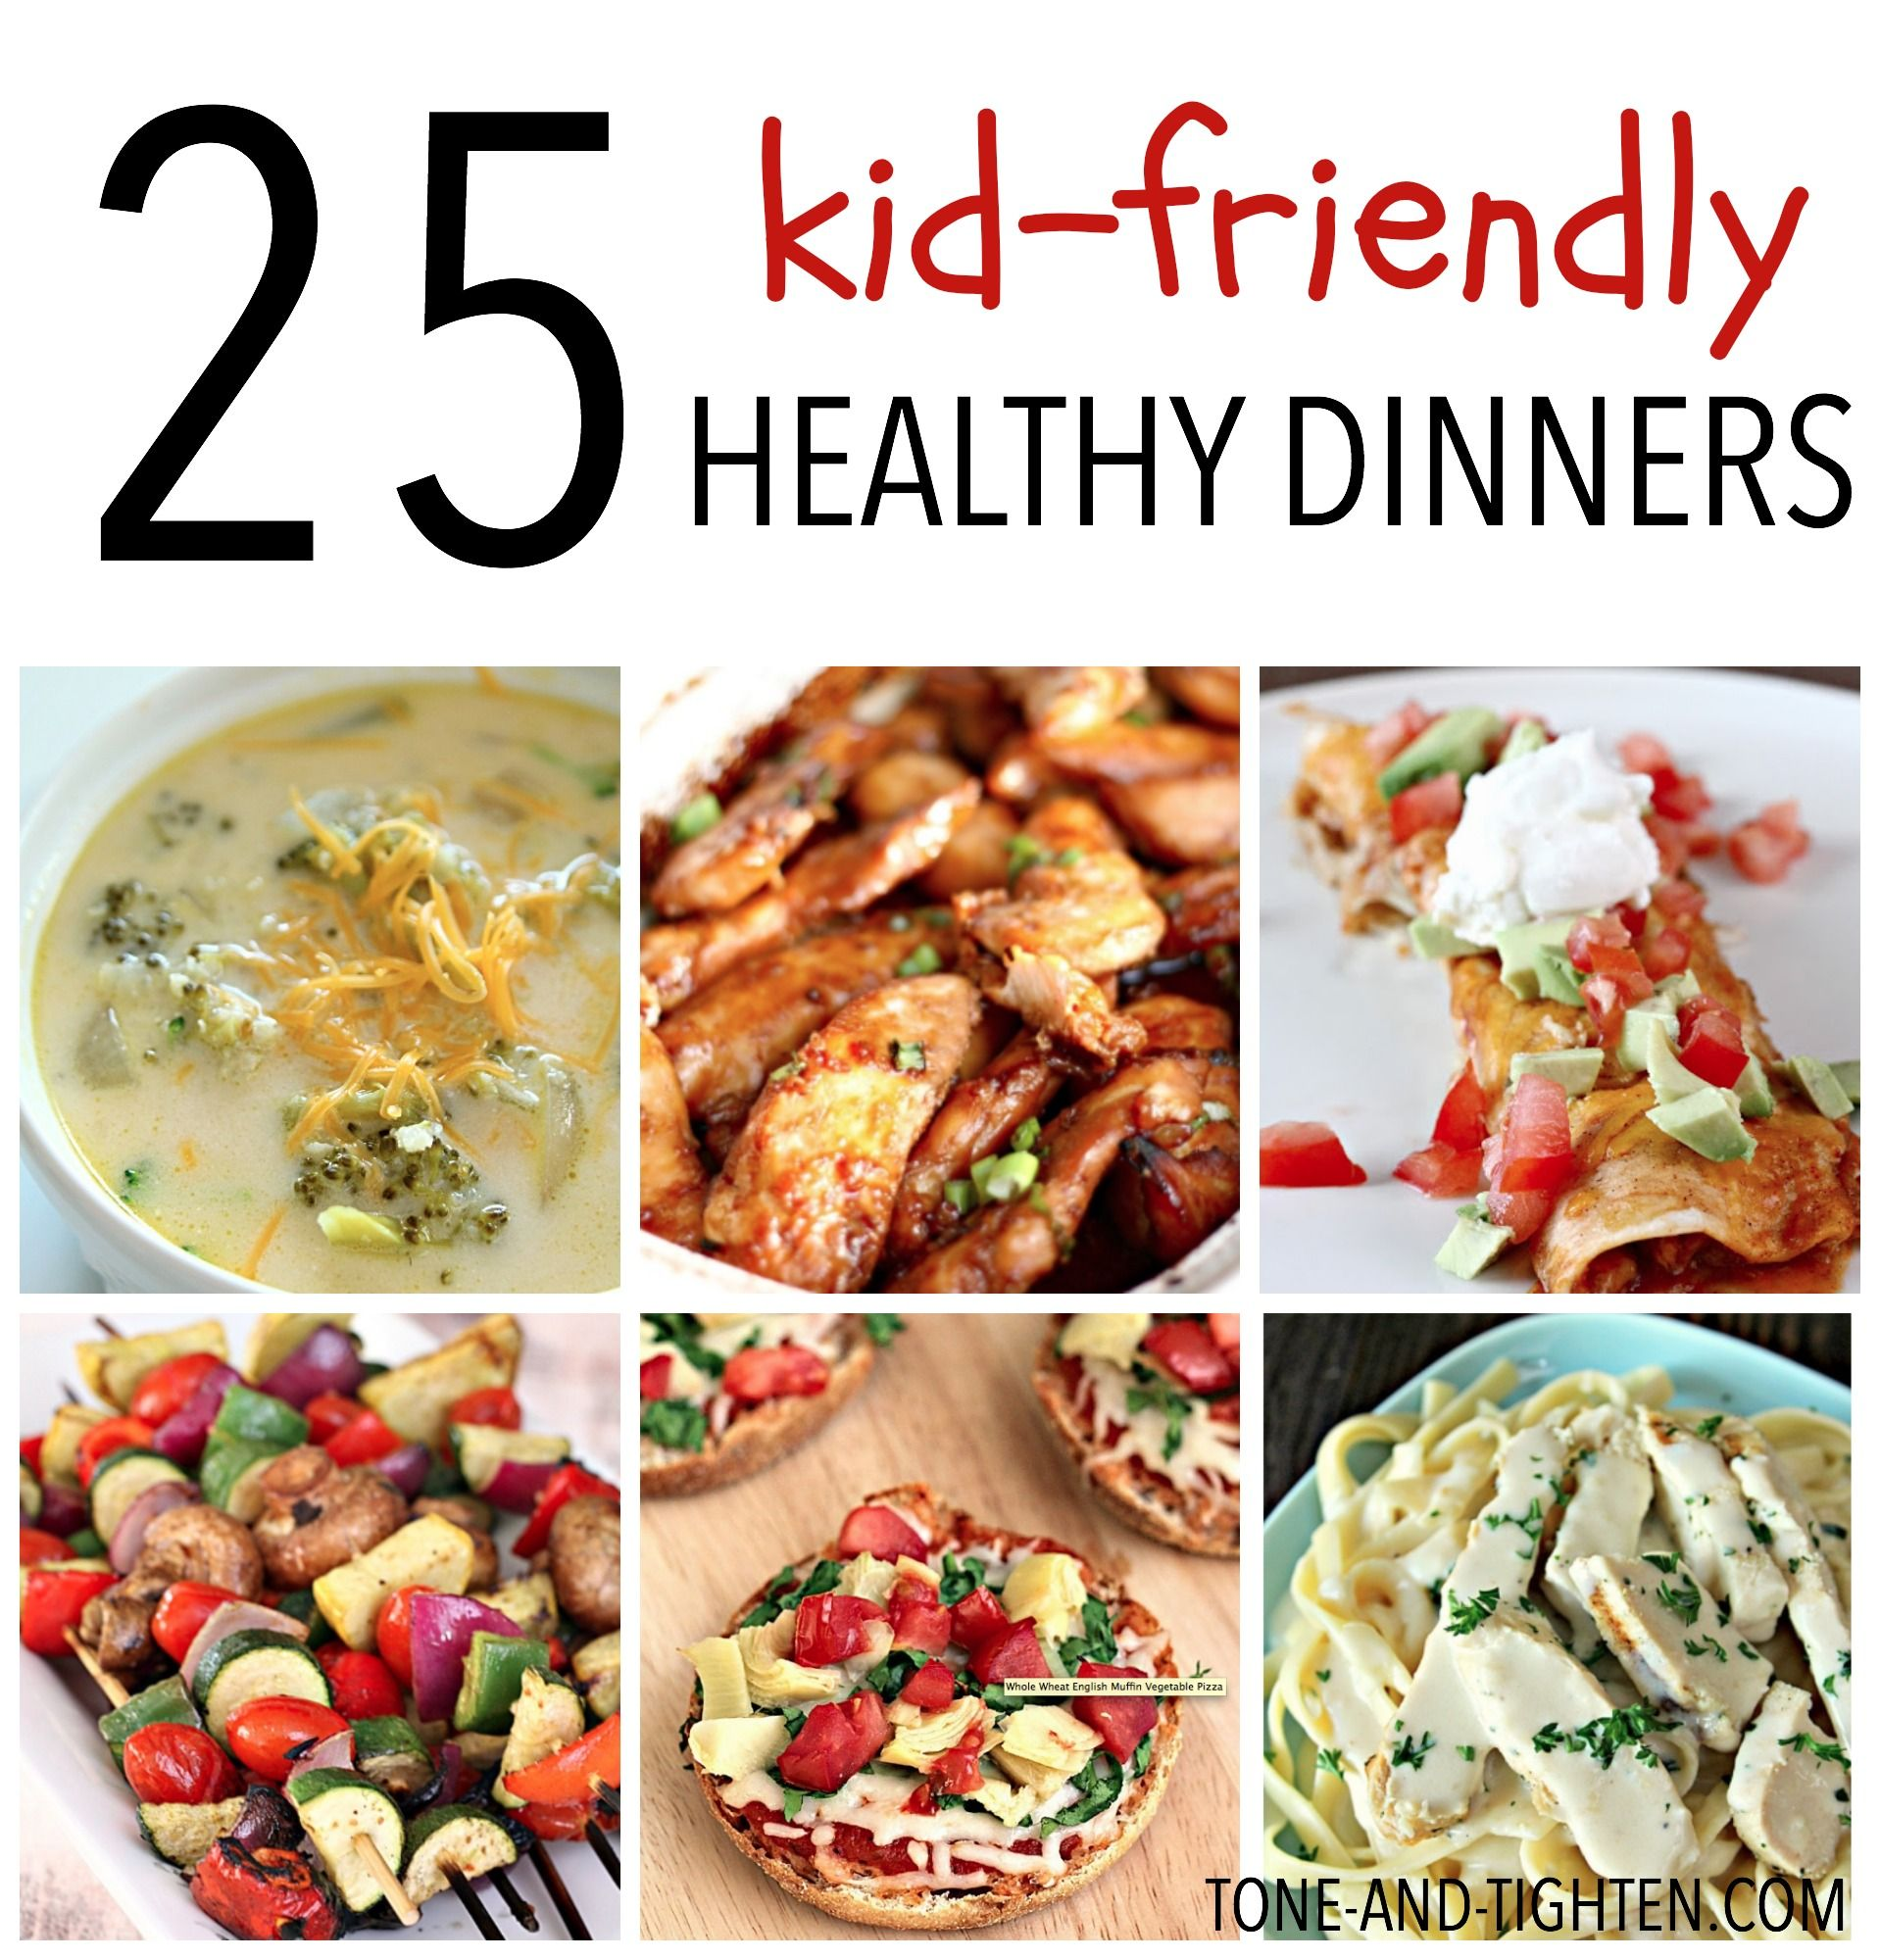 25 kid friendly healthy dinner recipes healthy recipes dinners food forumfinder Choice Image